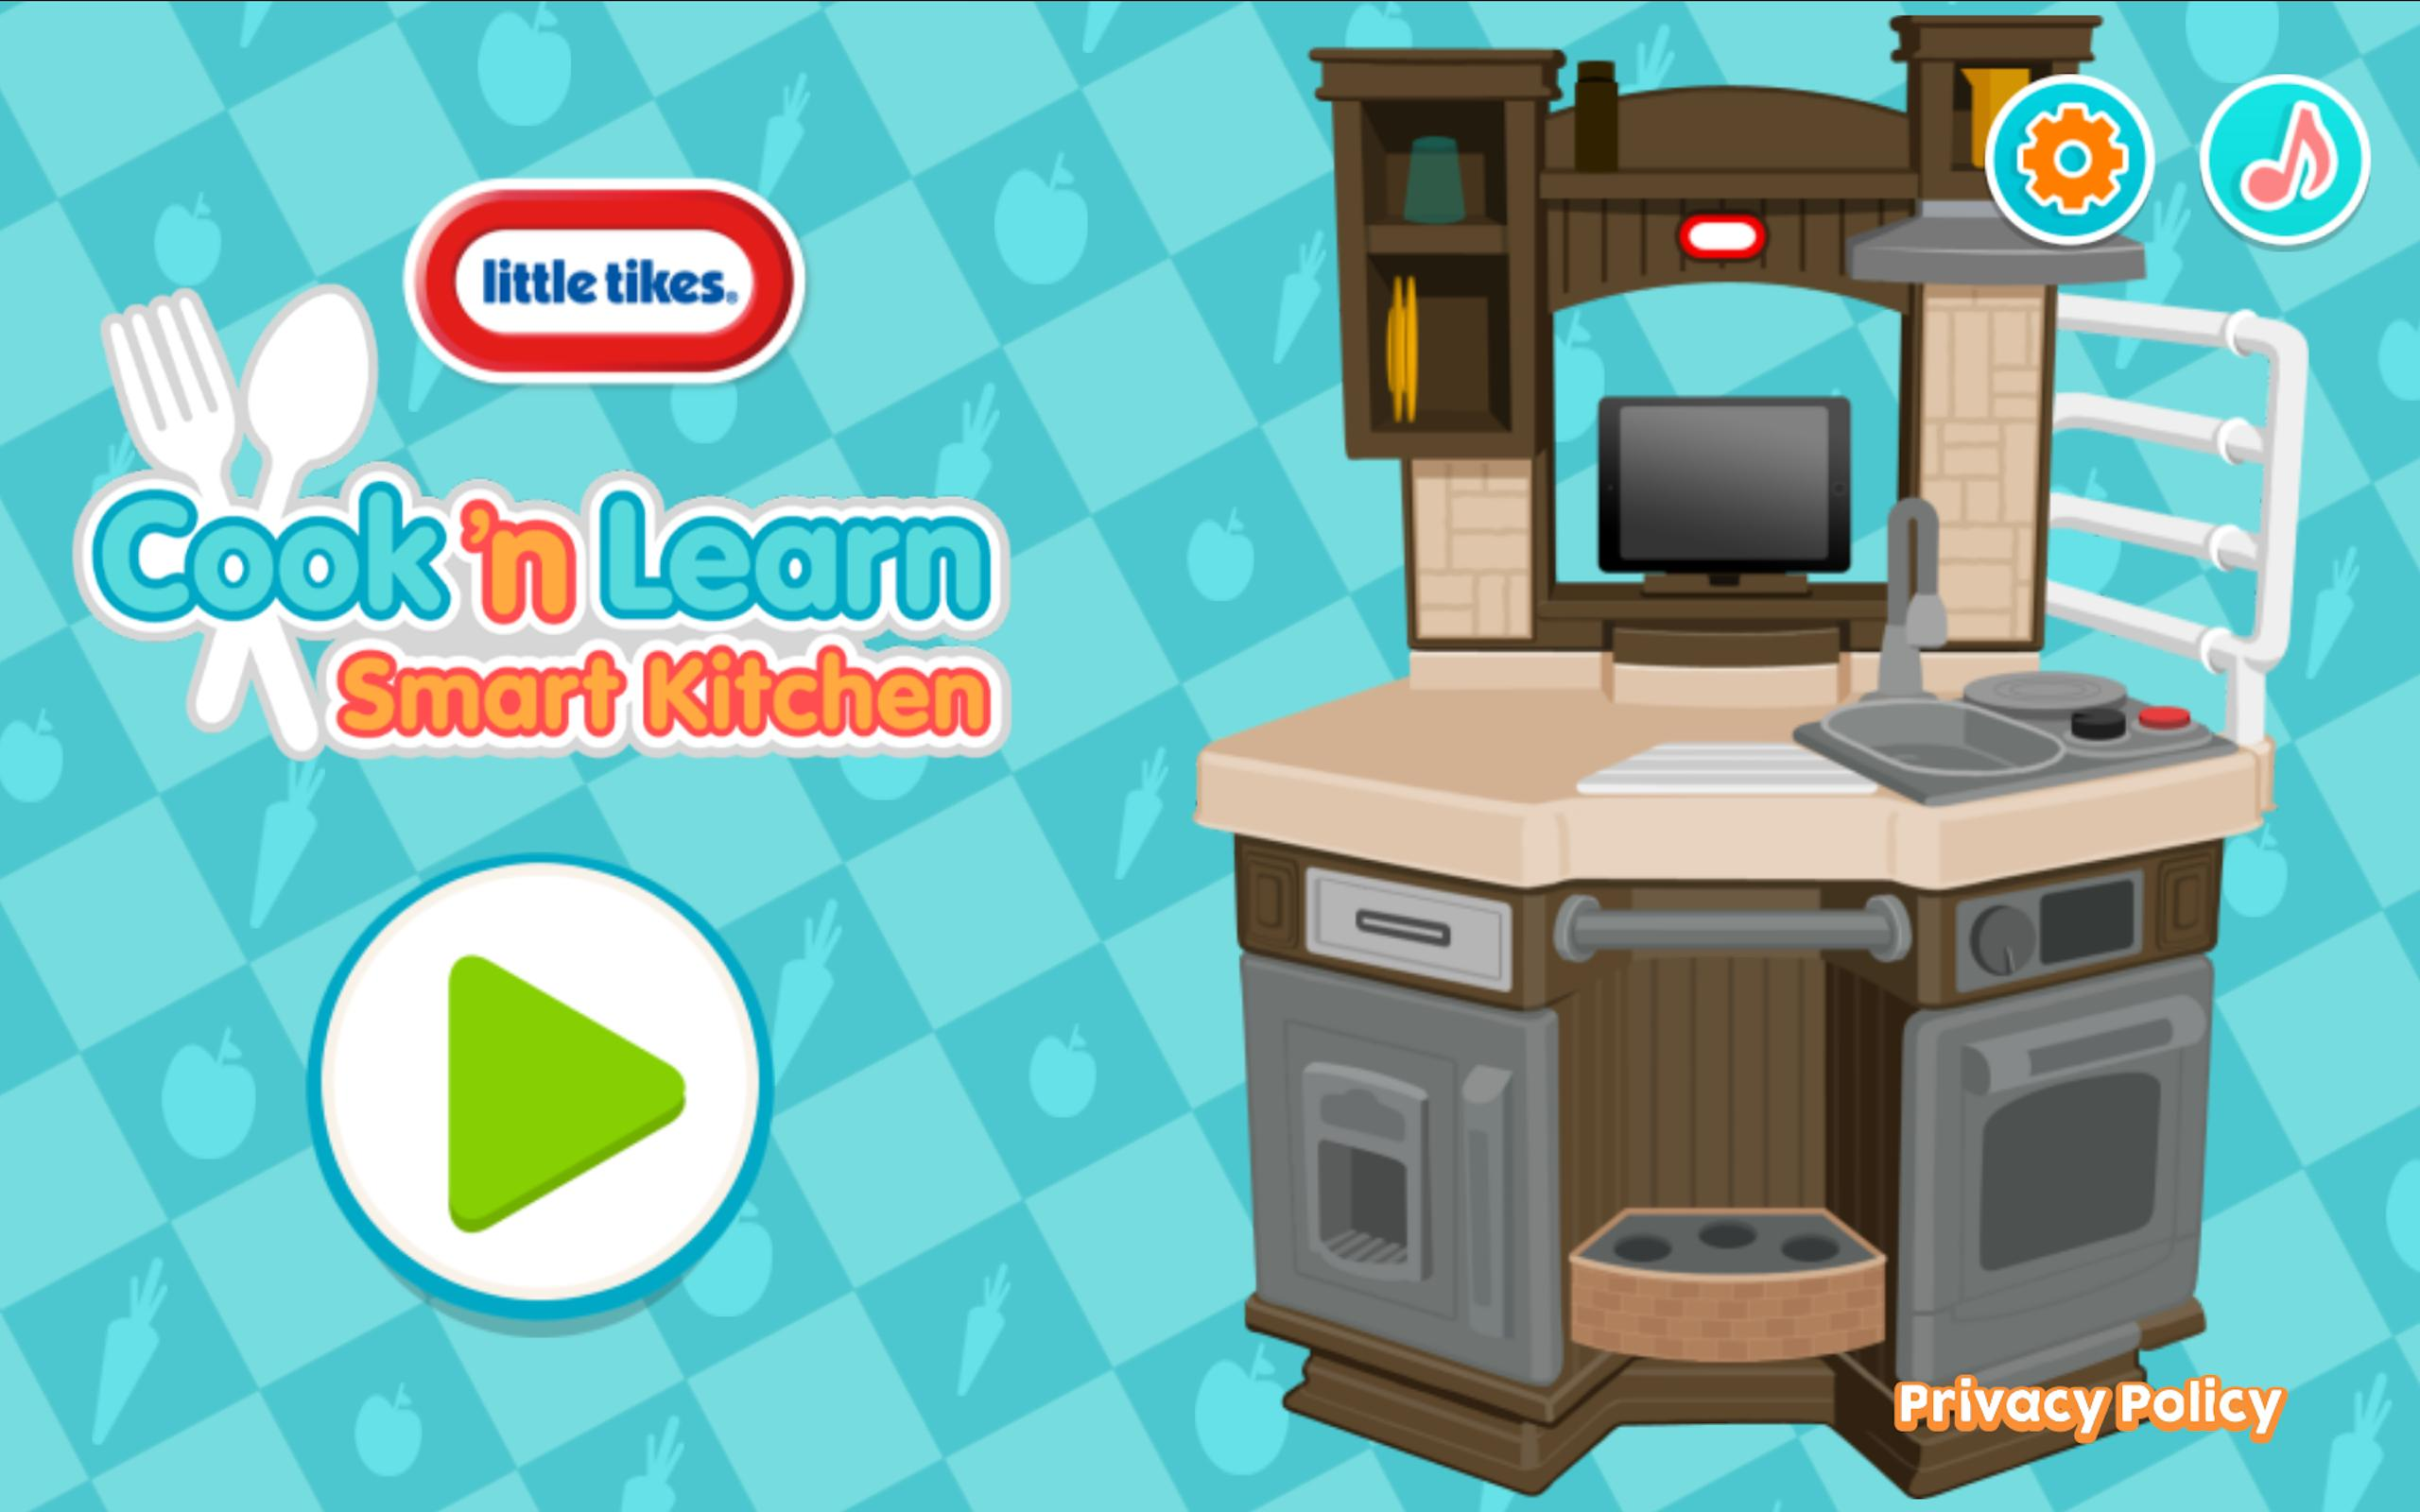 Cook 'n Learn Smart Kitchen for Android   APK Download